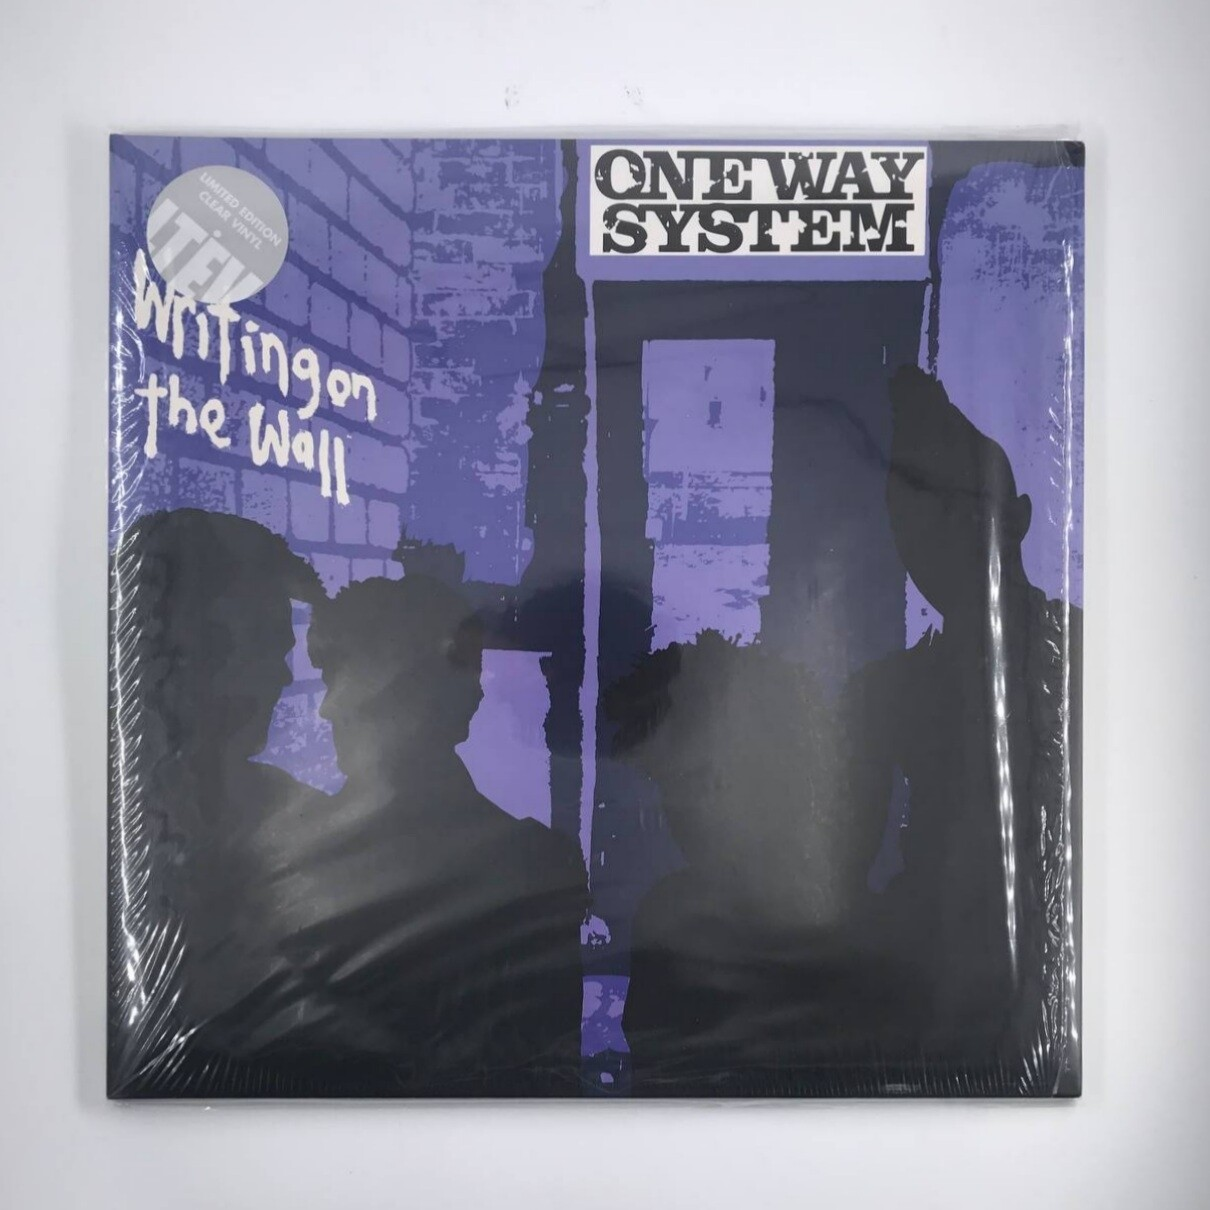 [USED] ONE WAY SYSTEM -WRITING ON THE WALL- LP (CLEAR VINYL)